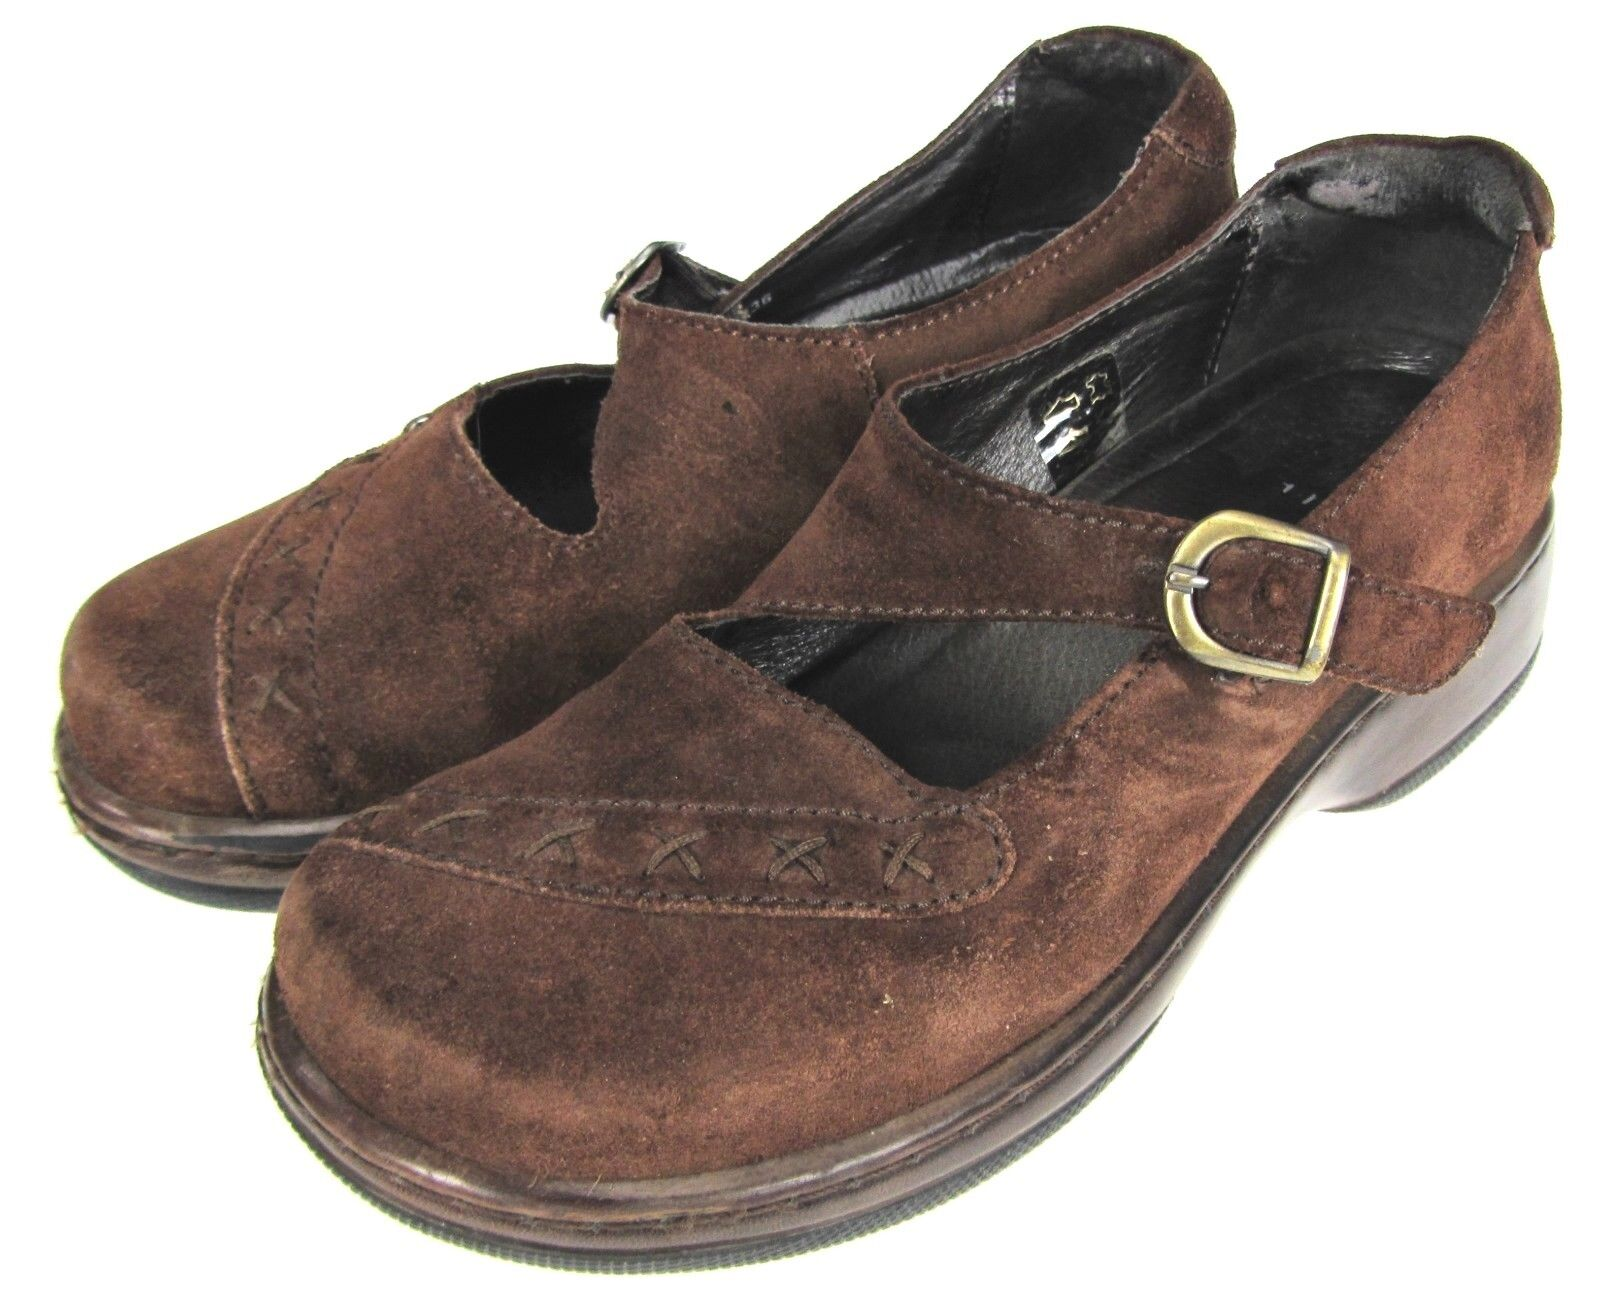 36 Dansko Brown Suede Leather Mary Jane Comfort Clogs Portugal